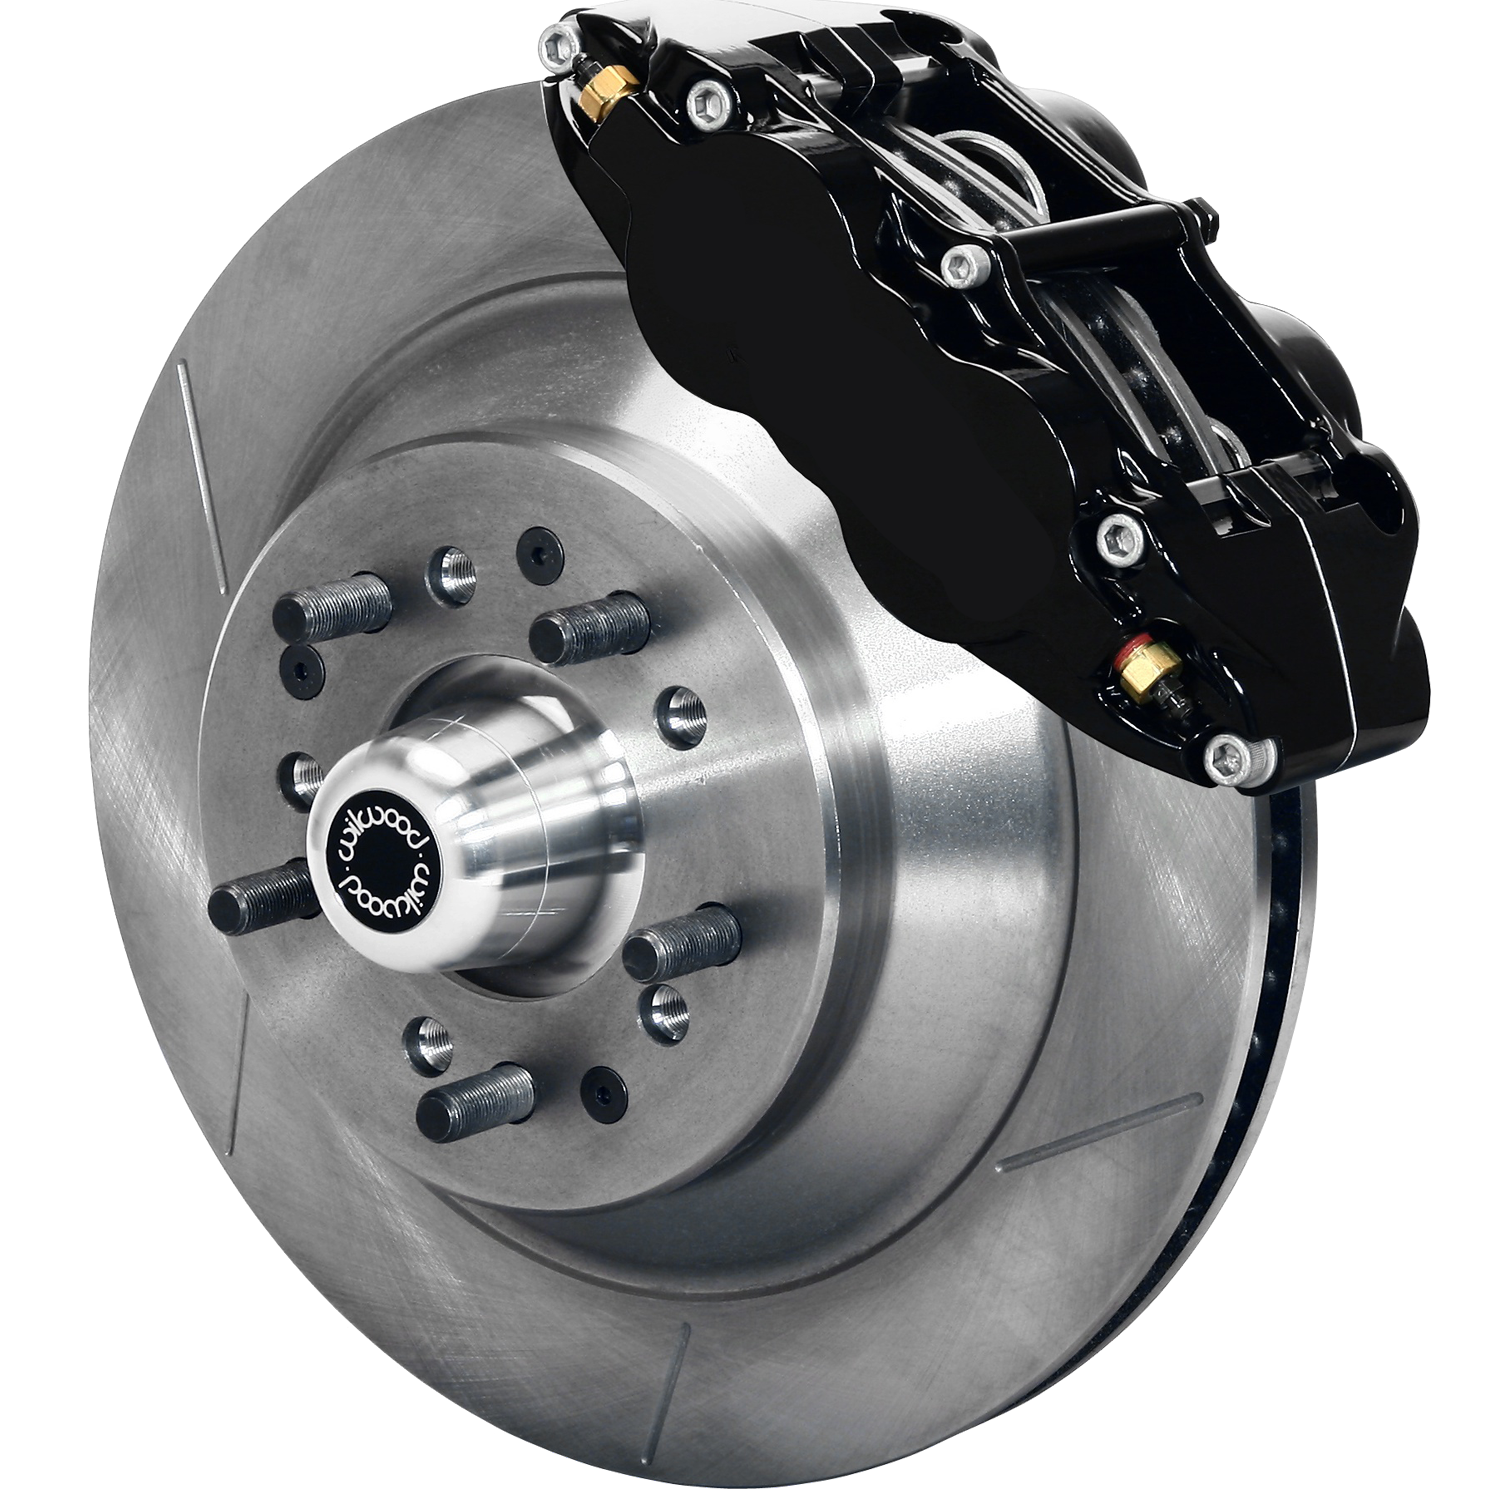 Car Brake Repair Service: Oreland Auto Service